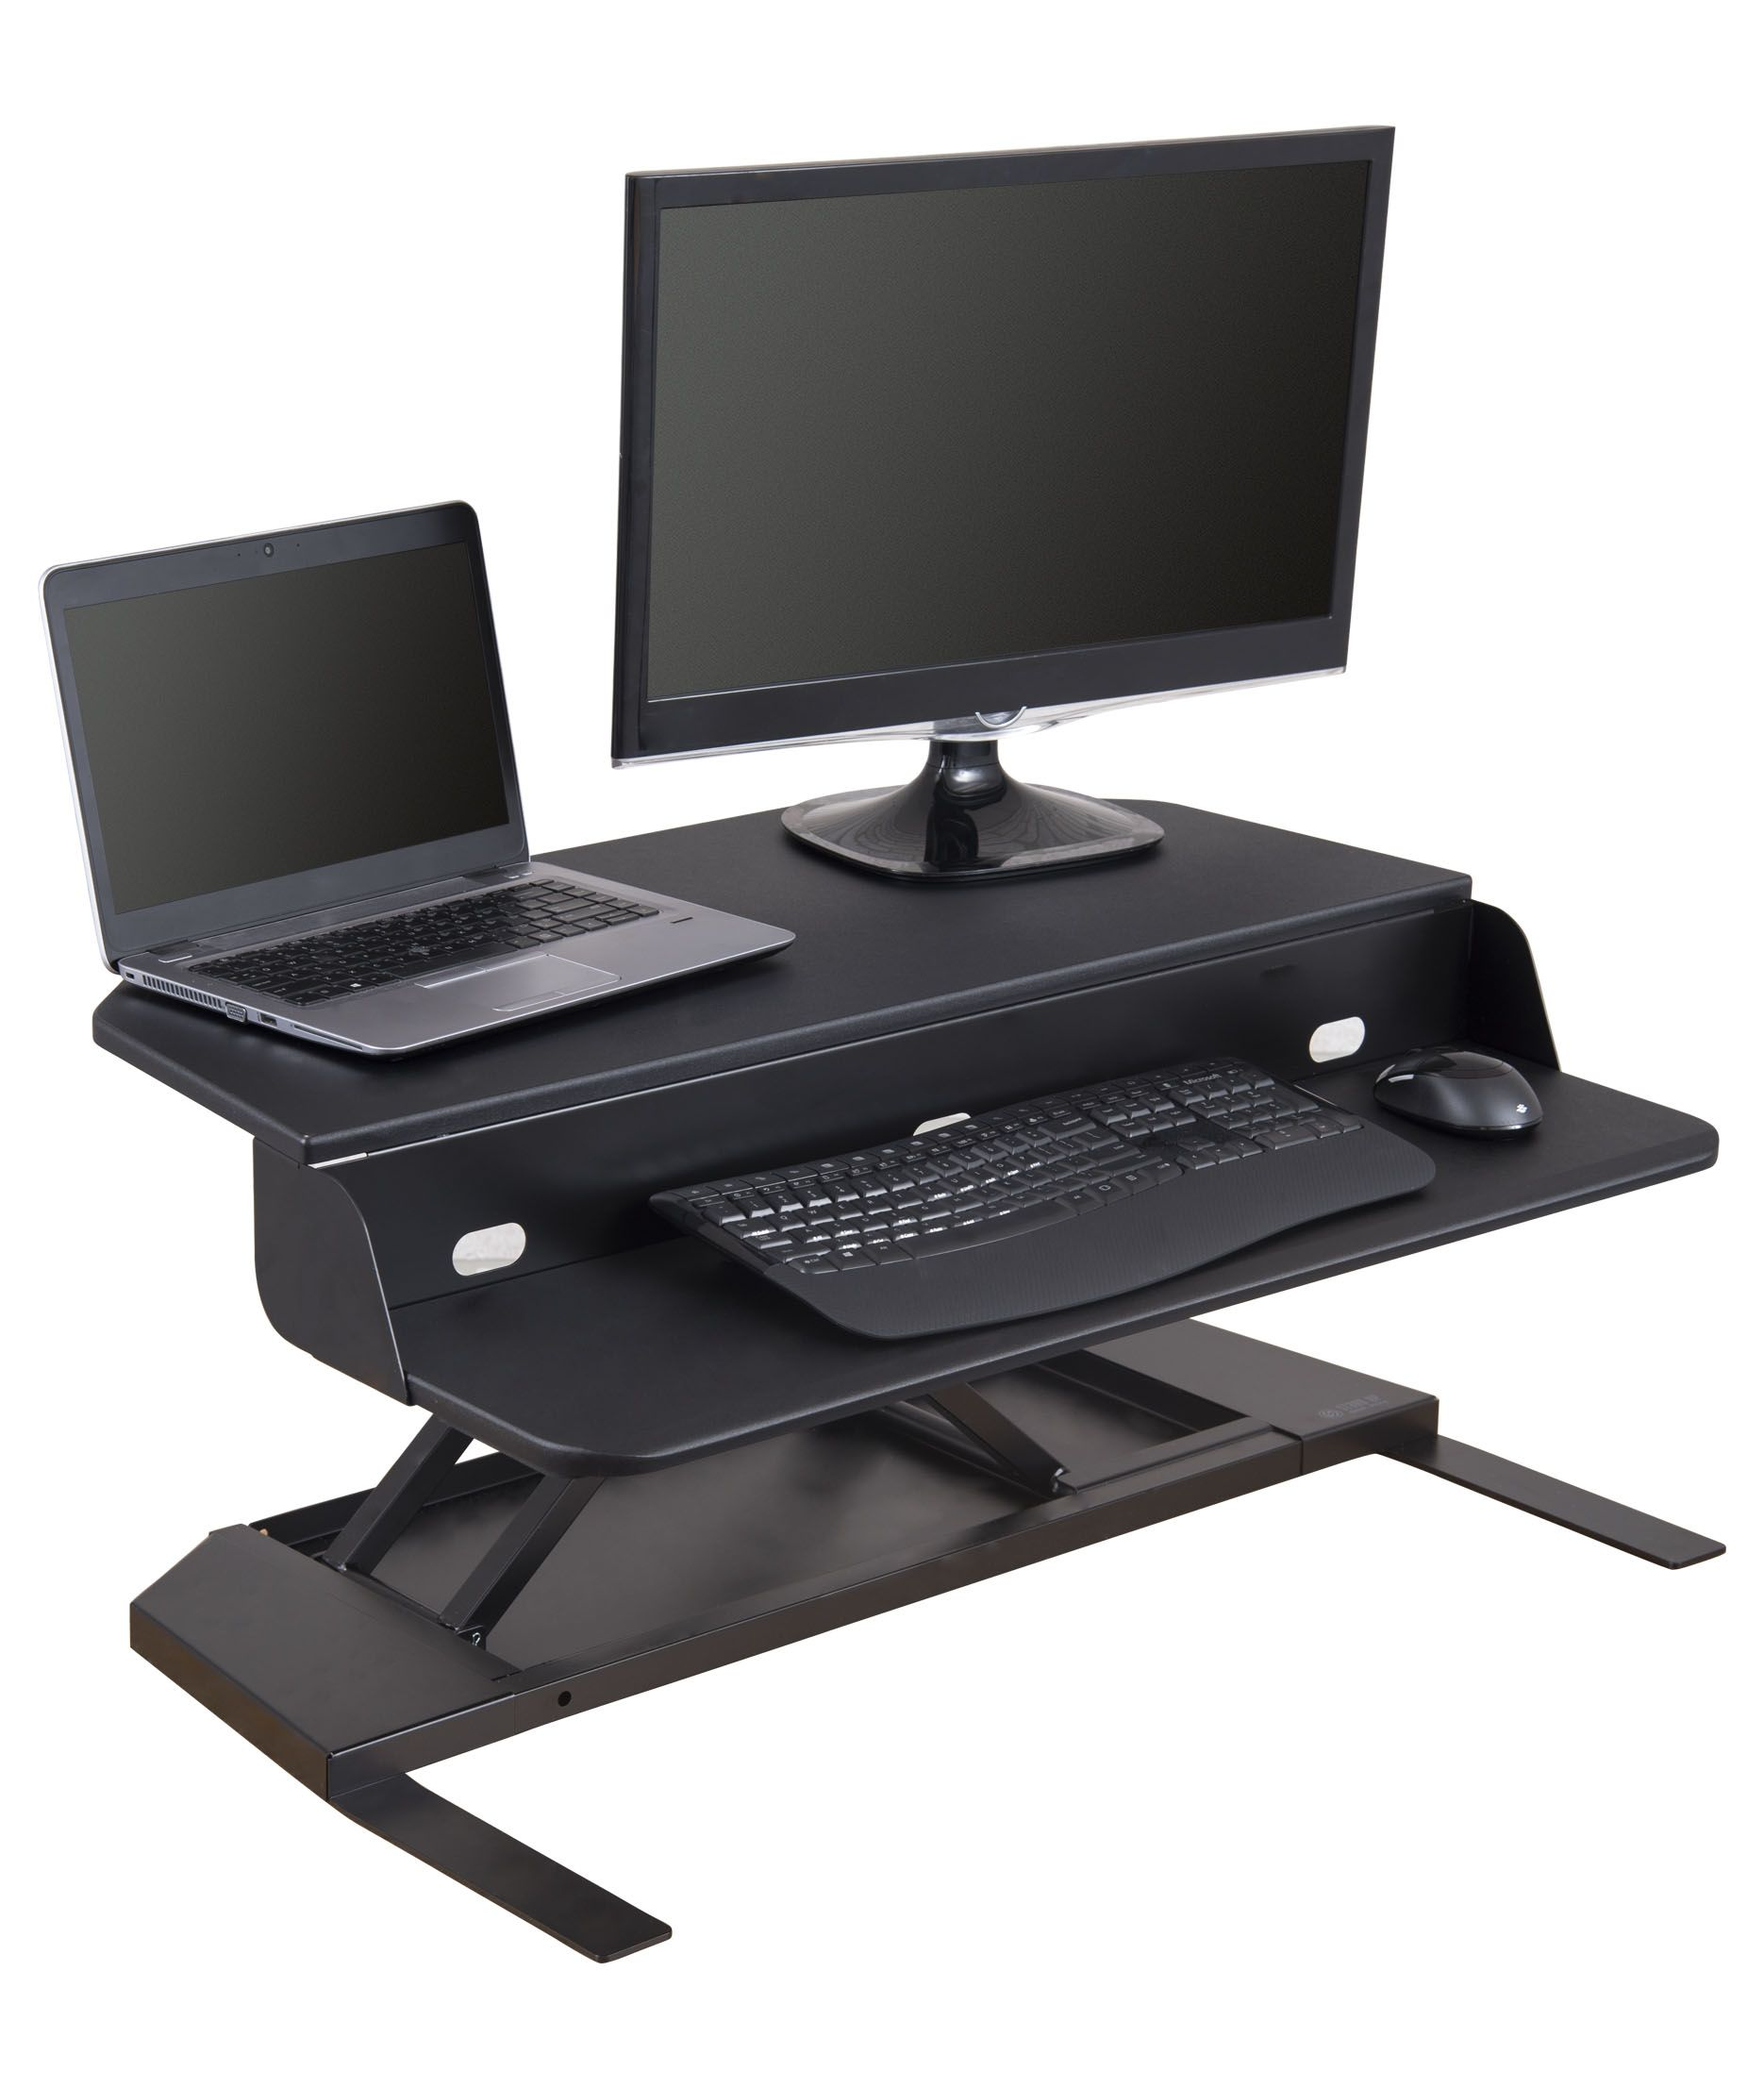 Awesome Airrise Corner Pro Adjustable Standing Desk Converter Download Free Architecture Designs Grimeyleaguecom